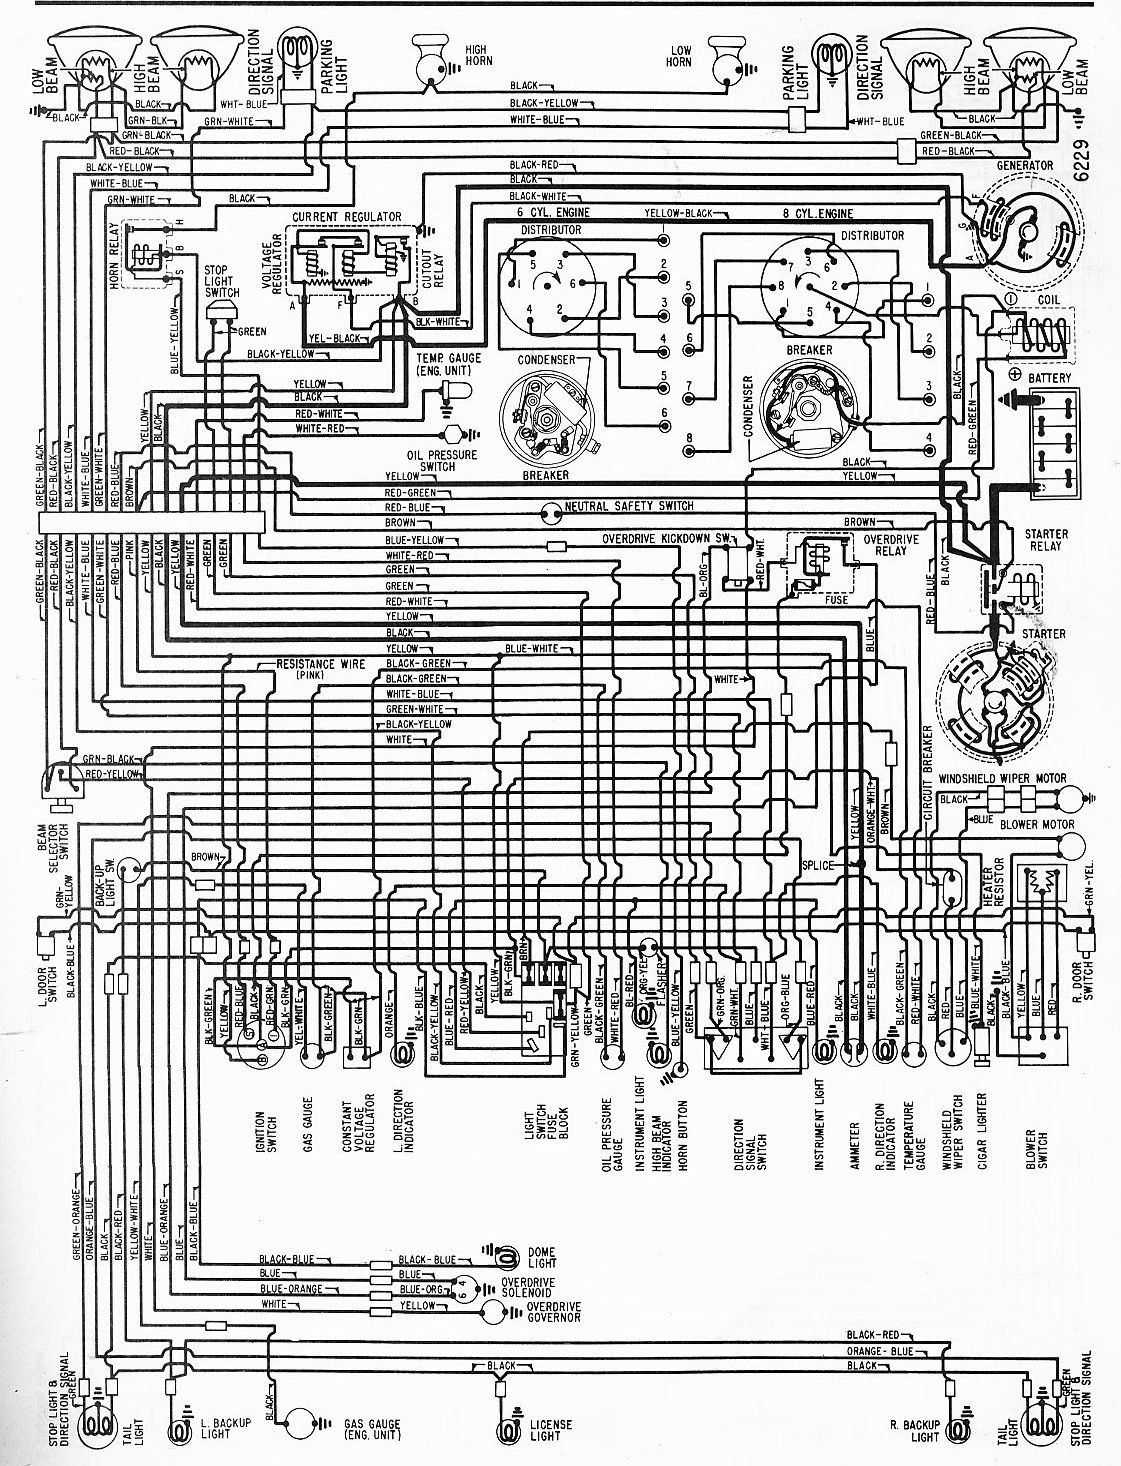 Diagram Wiring Diagrams For 1972 Chevy Truck Full Version Hd Quality Chevy Truck Skematik110isi Gsdportotorres It